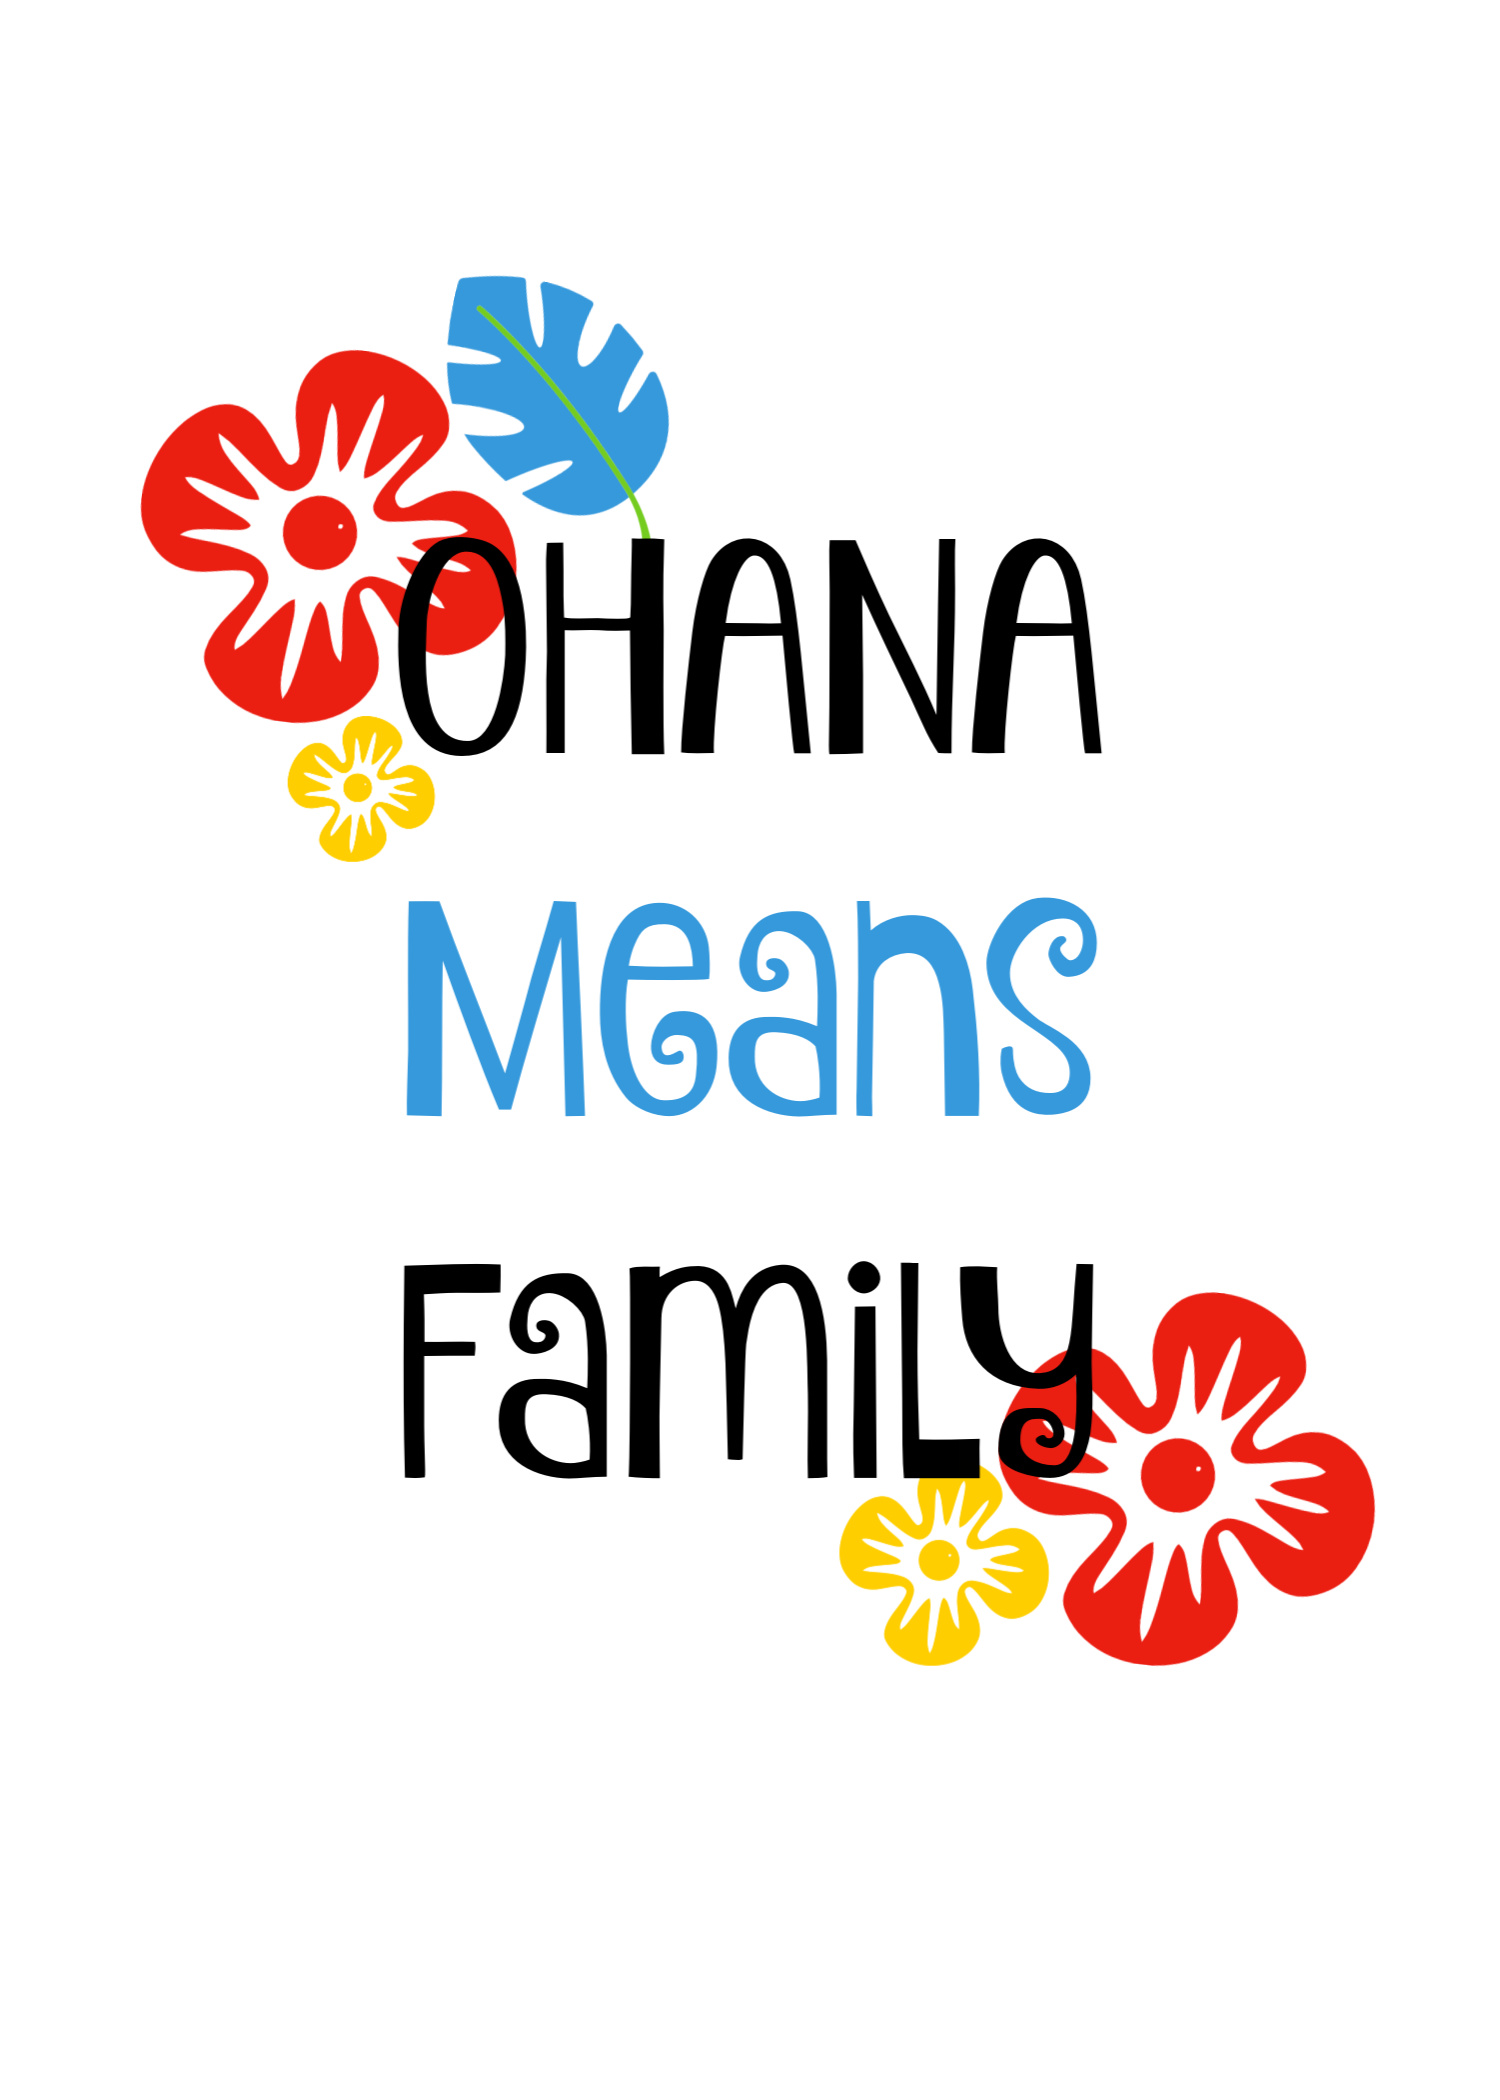 Free 'Ohana Means Family' Download